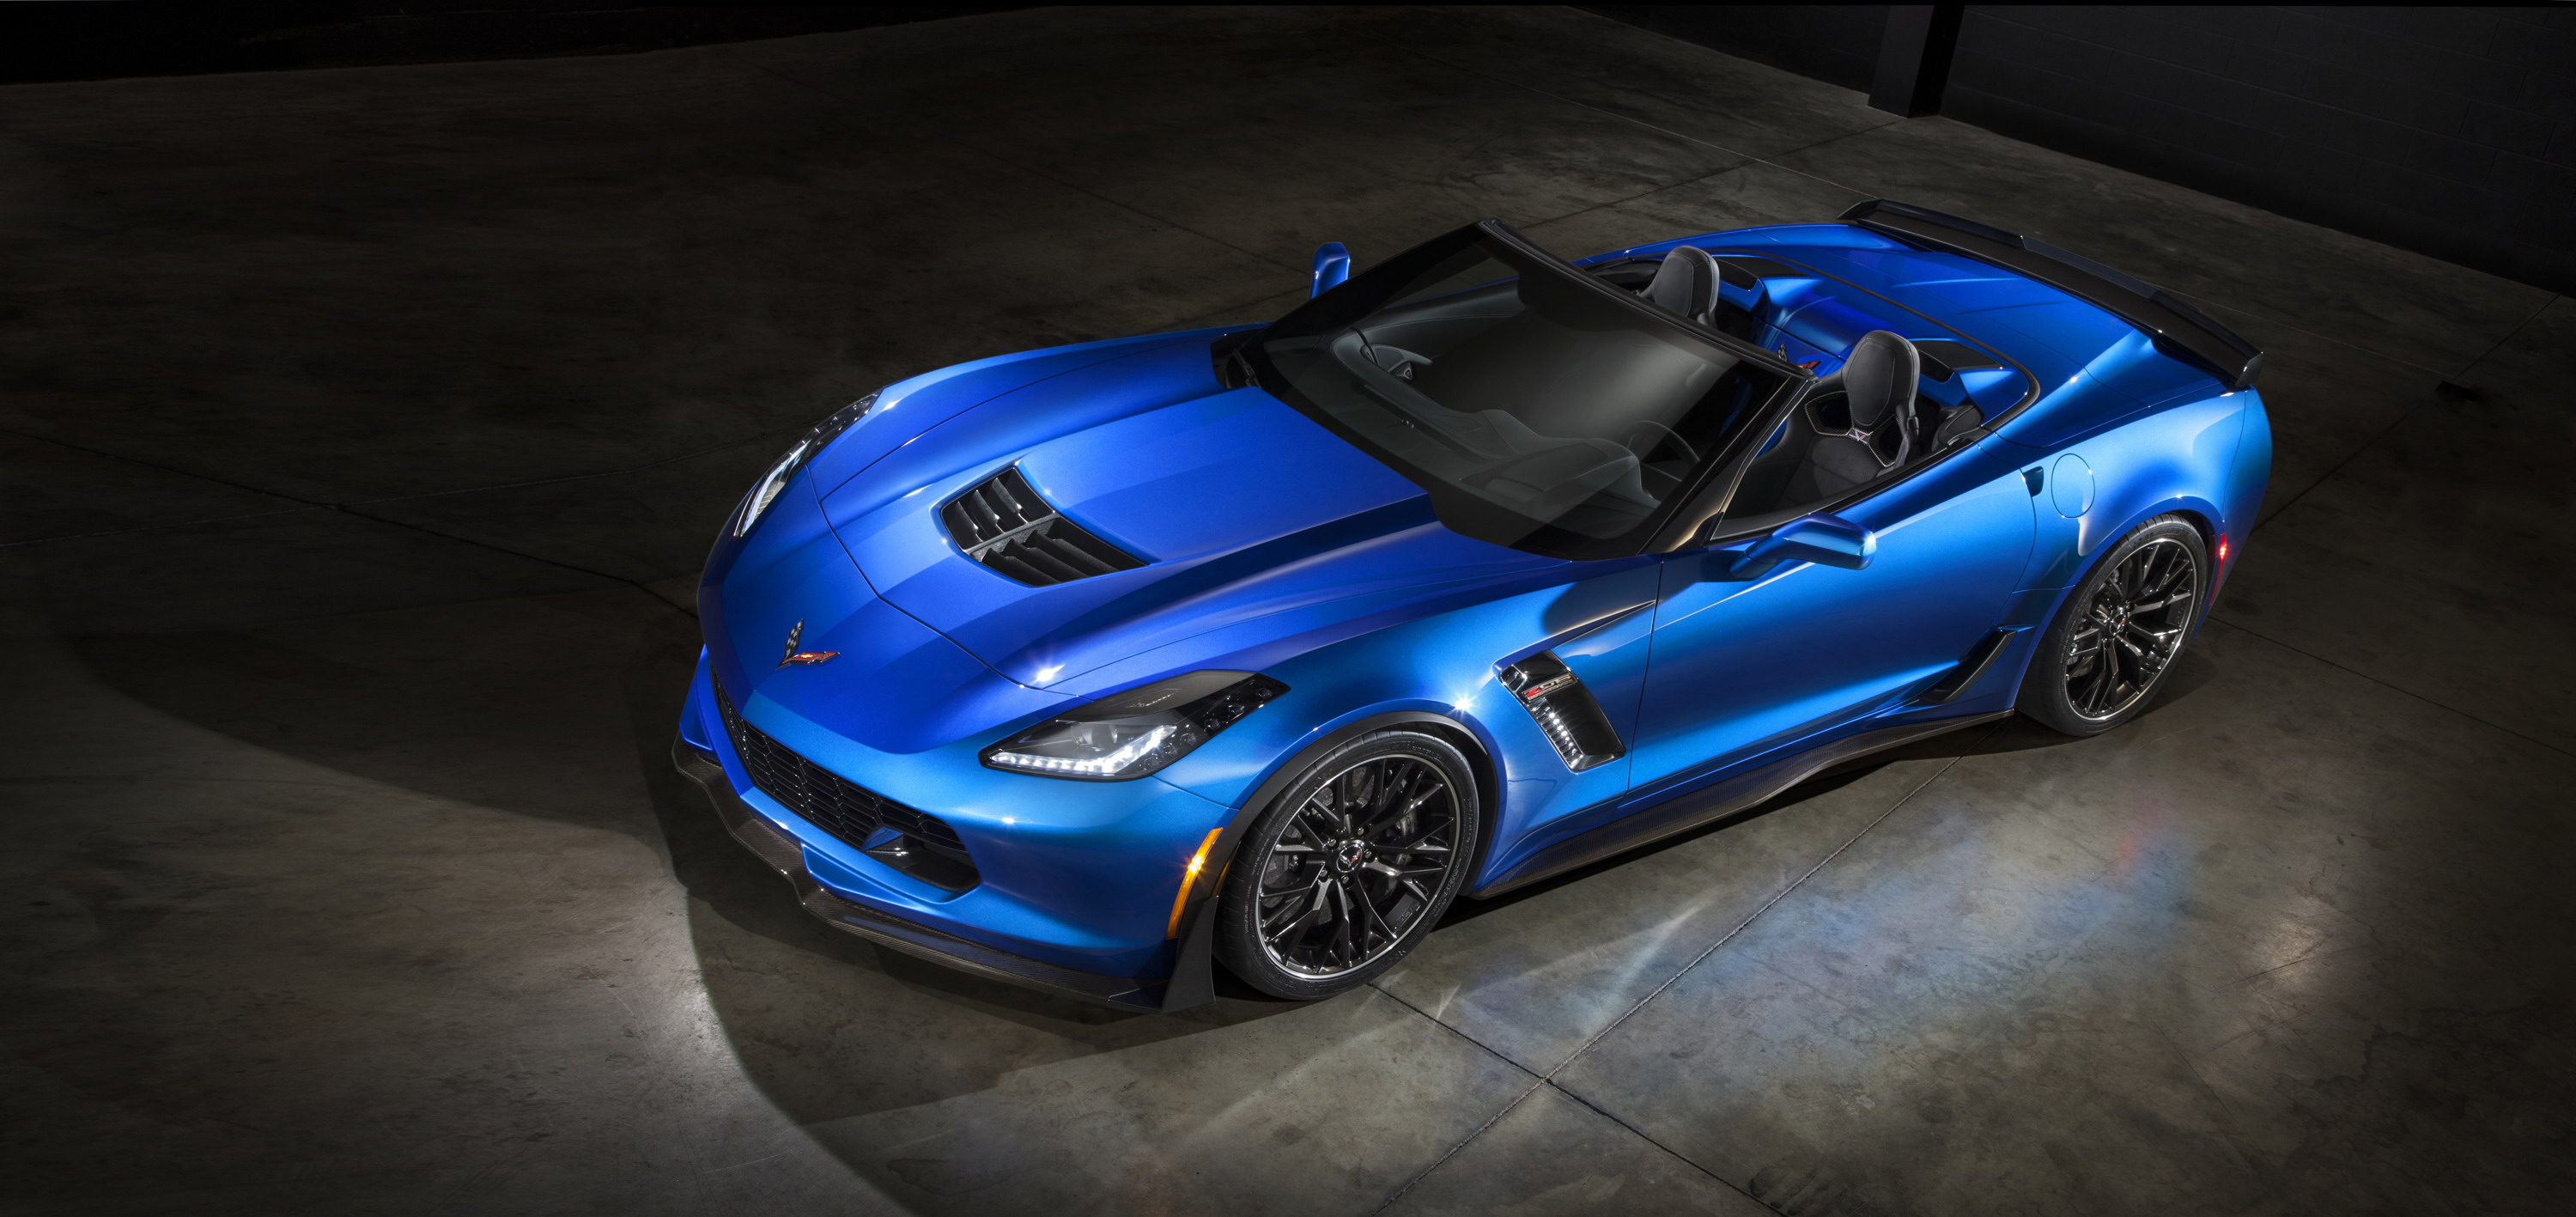 2015 Chevrolet Corvette Z06 Convertible Review - Gallery - Top Speed